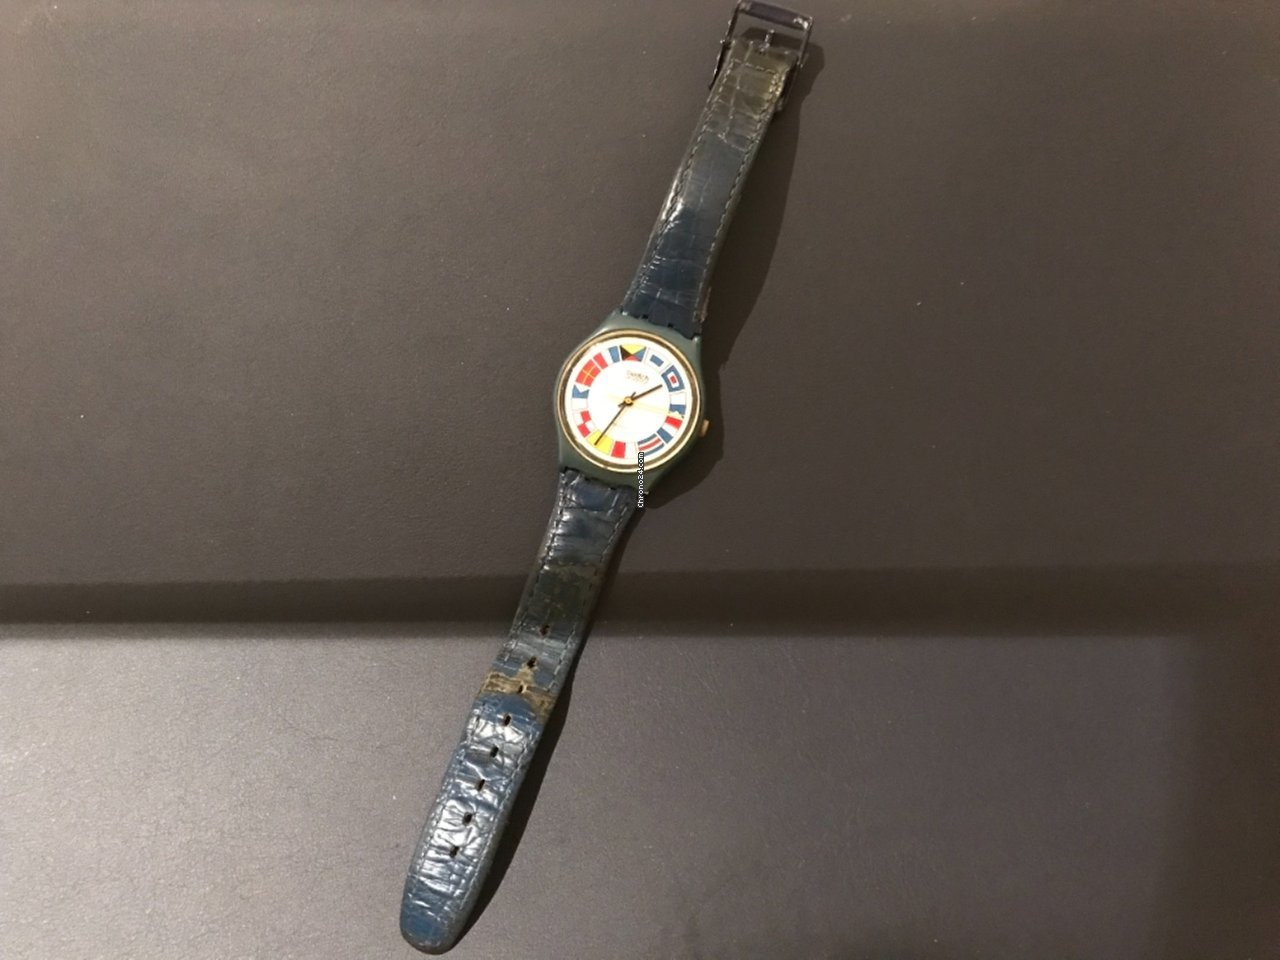 Swatch 584 1983 pre-owned